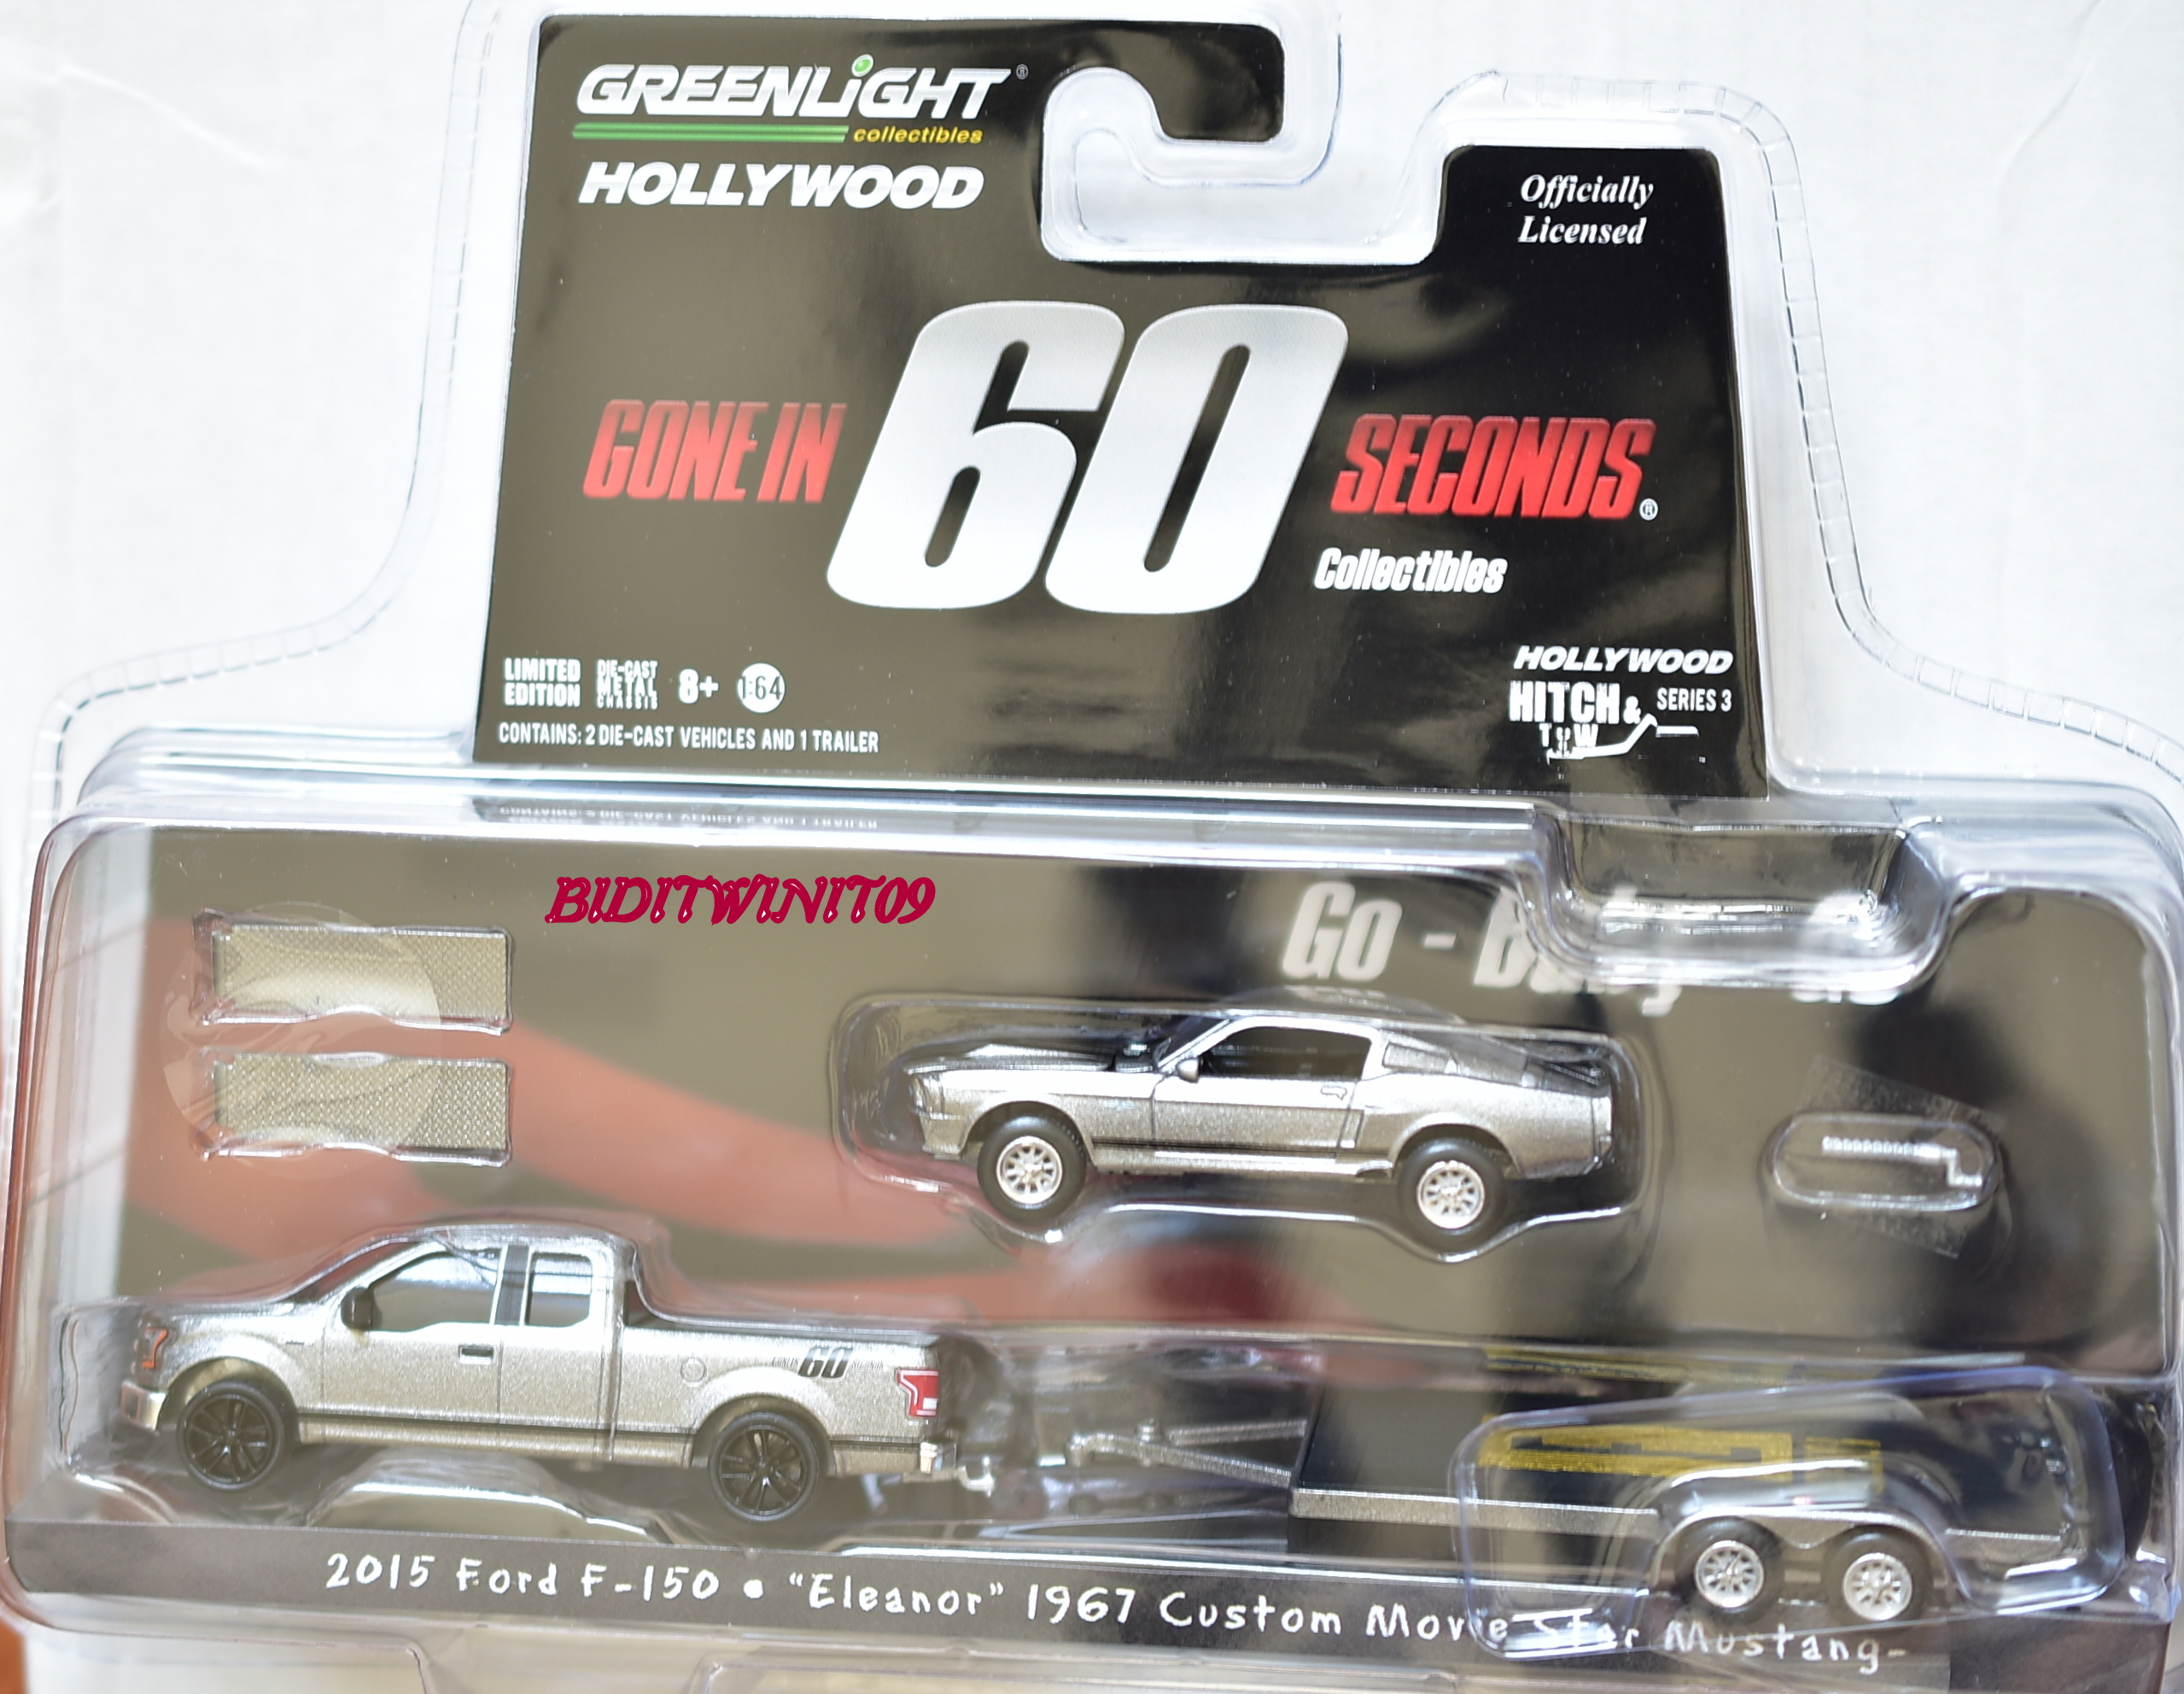 GREENLIGHT 2015 FORD F-150 ELEANOR 1967 MUSTANG GONE IN 60 SECONDS